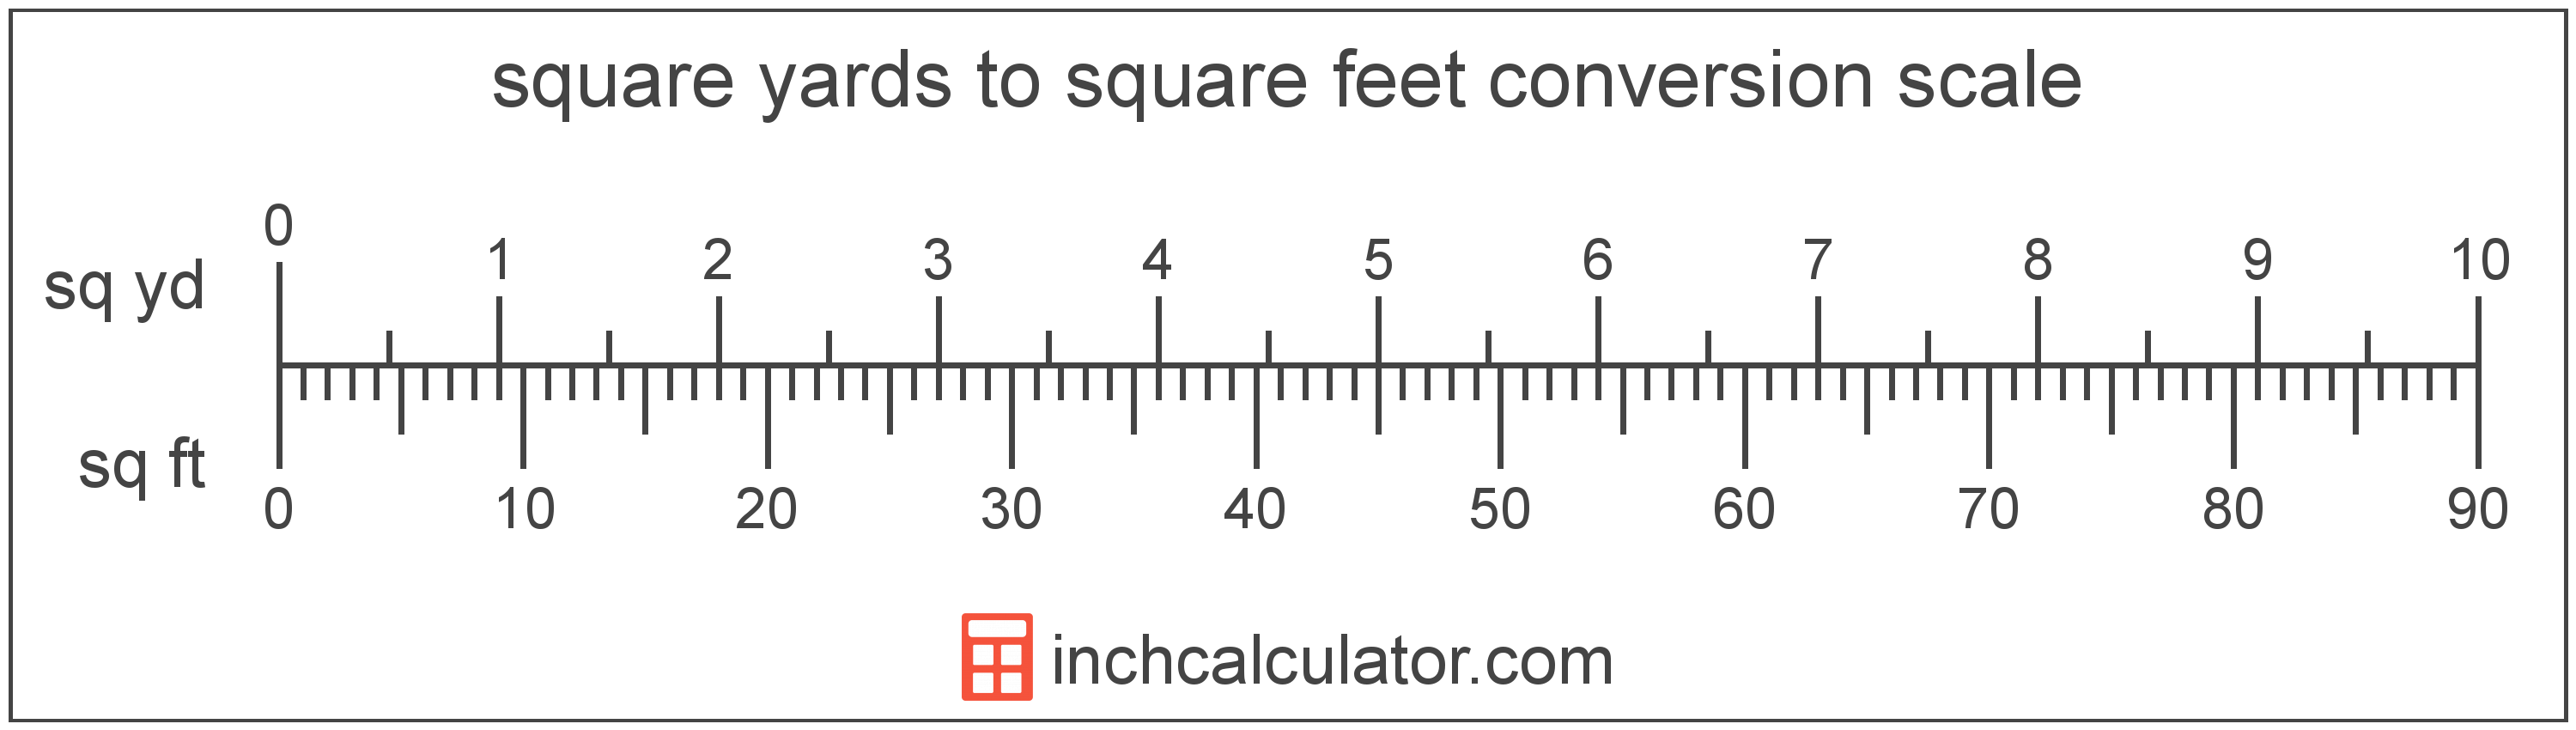 Square Feet To Square Yards Conversion Sq Ft To Sq Yd